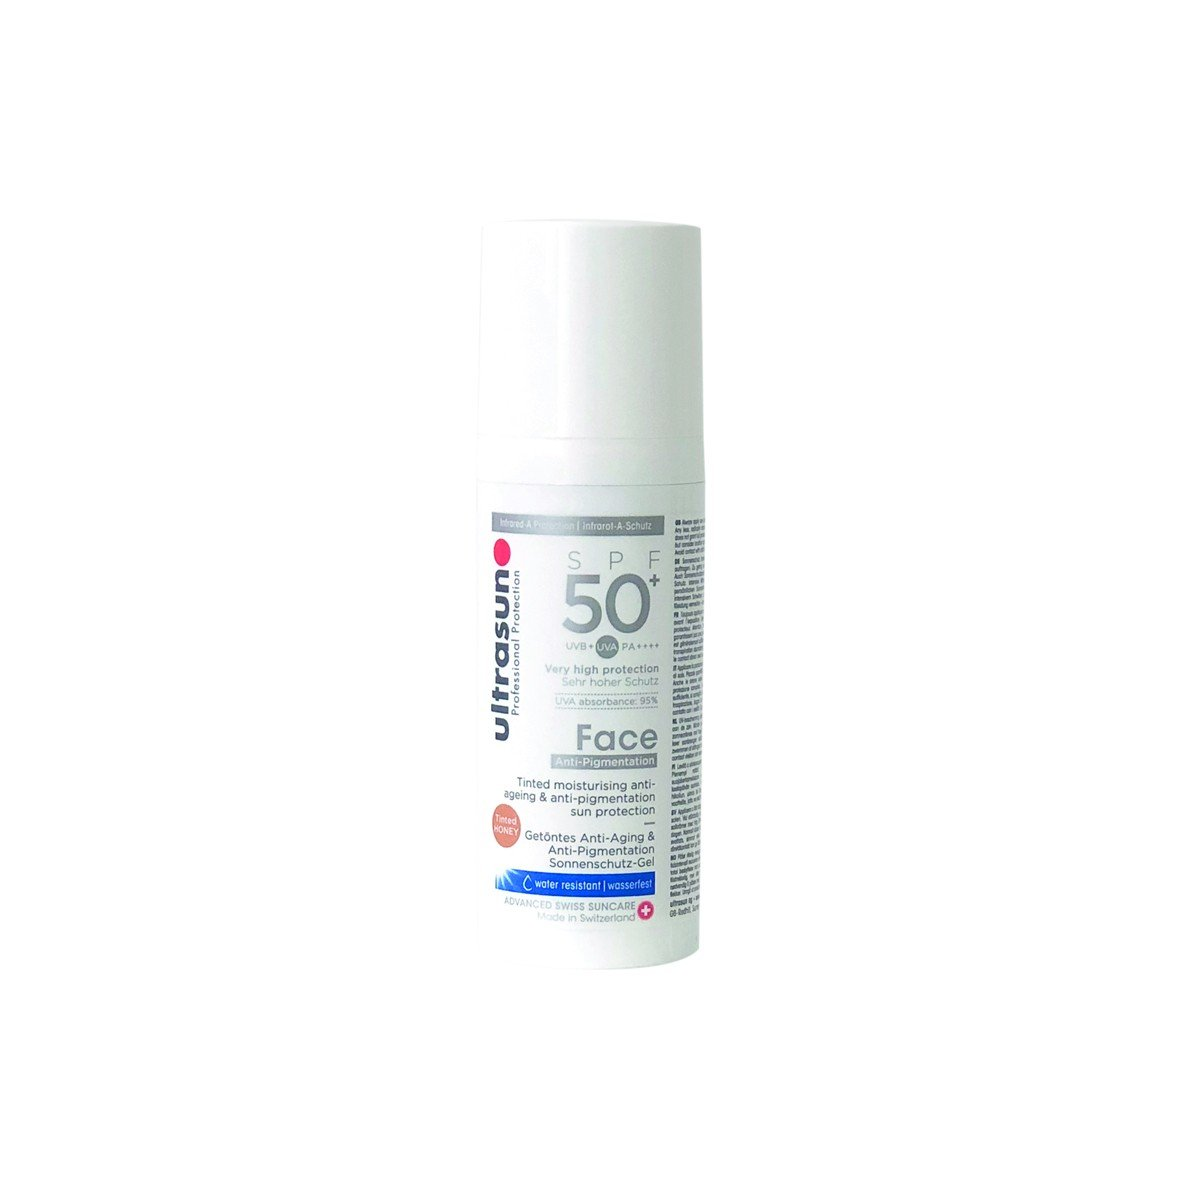 Ultrasun Tinted Anti-Pigmentation SPF50+ Face Lotion